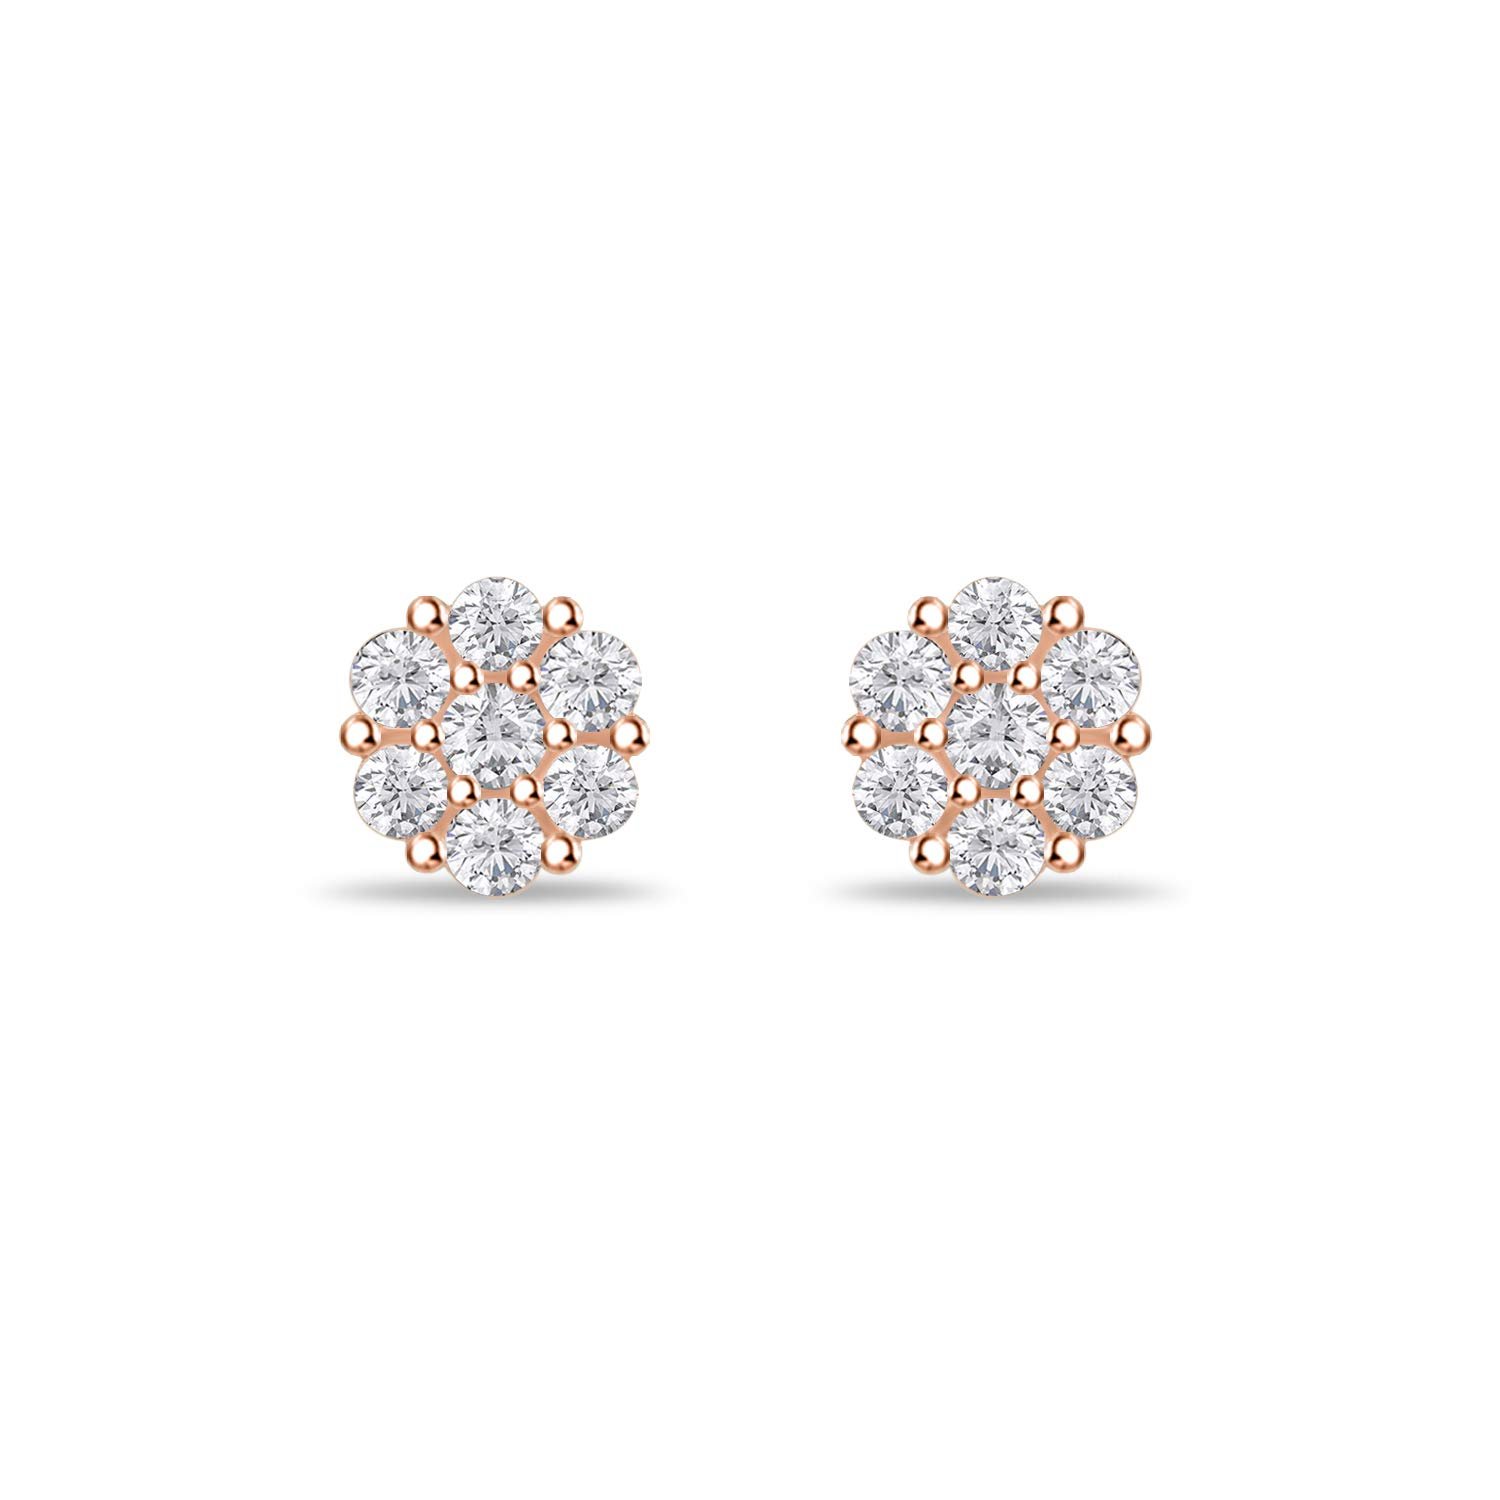 7mm Round Cubic Zirconia Cluster Flower Stud Earrings Love Gift to Dear One 14k Gold Over